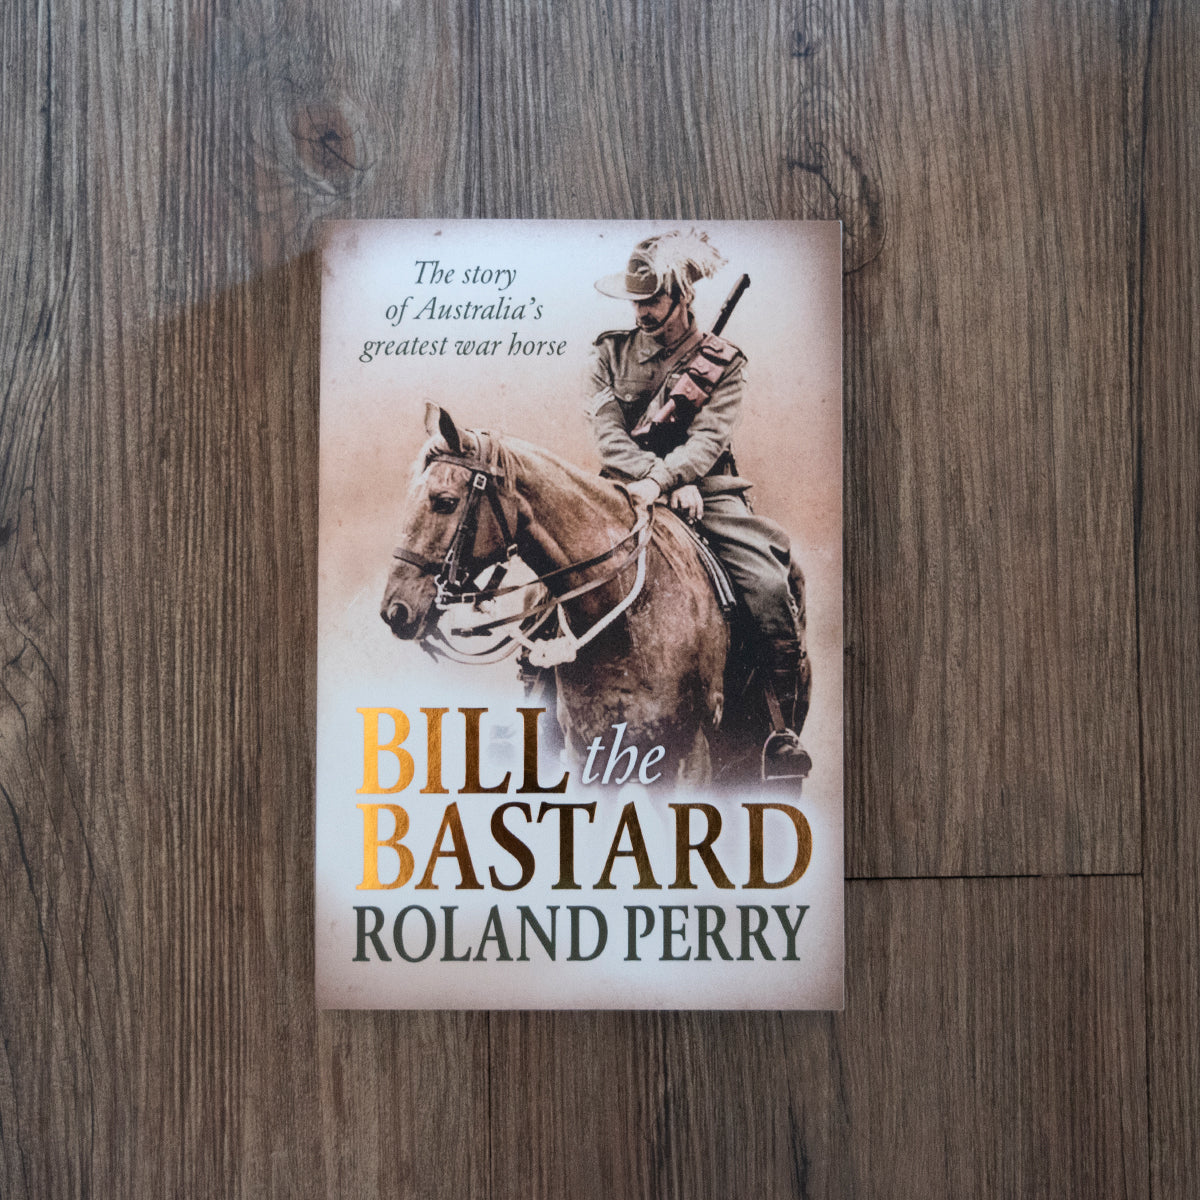 Bill the Bastard book by Roland Perry